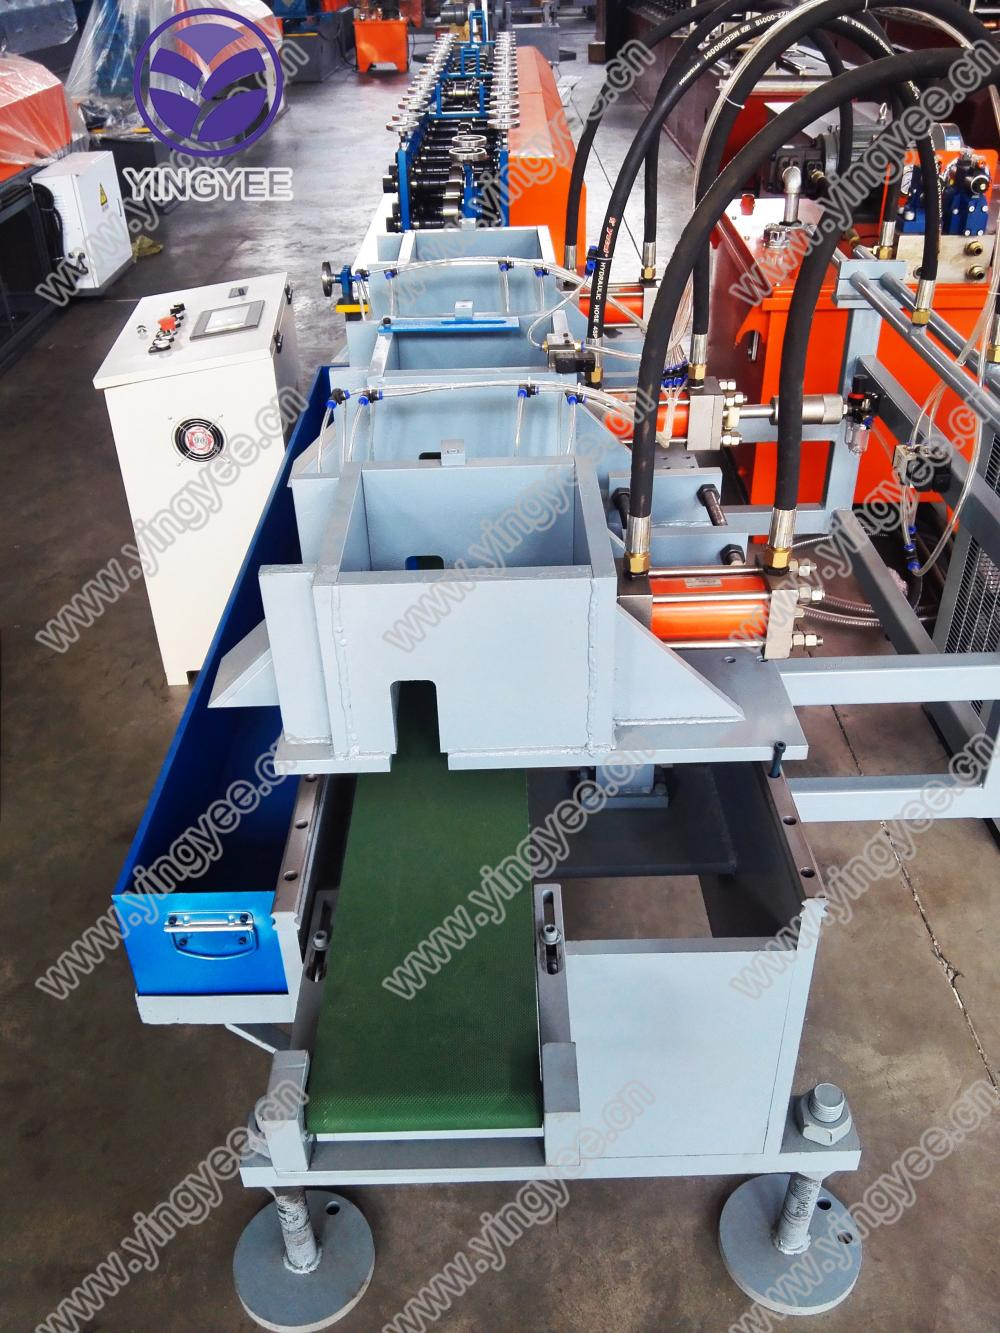 T Ceiling Bar Machine From Yingyee007